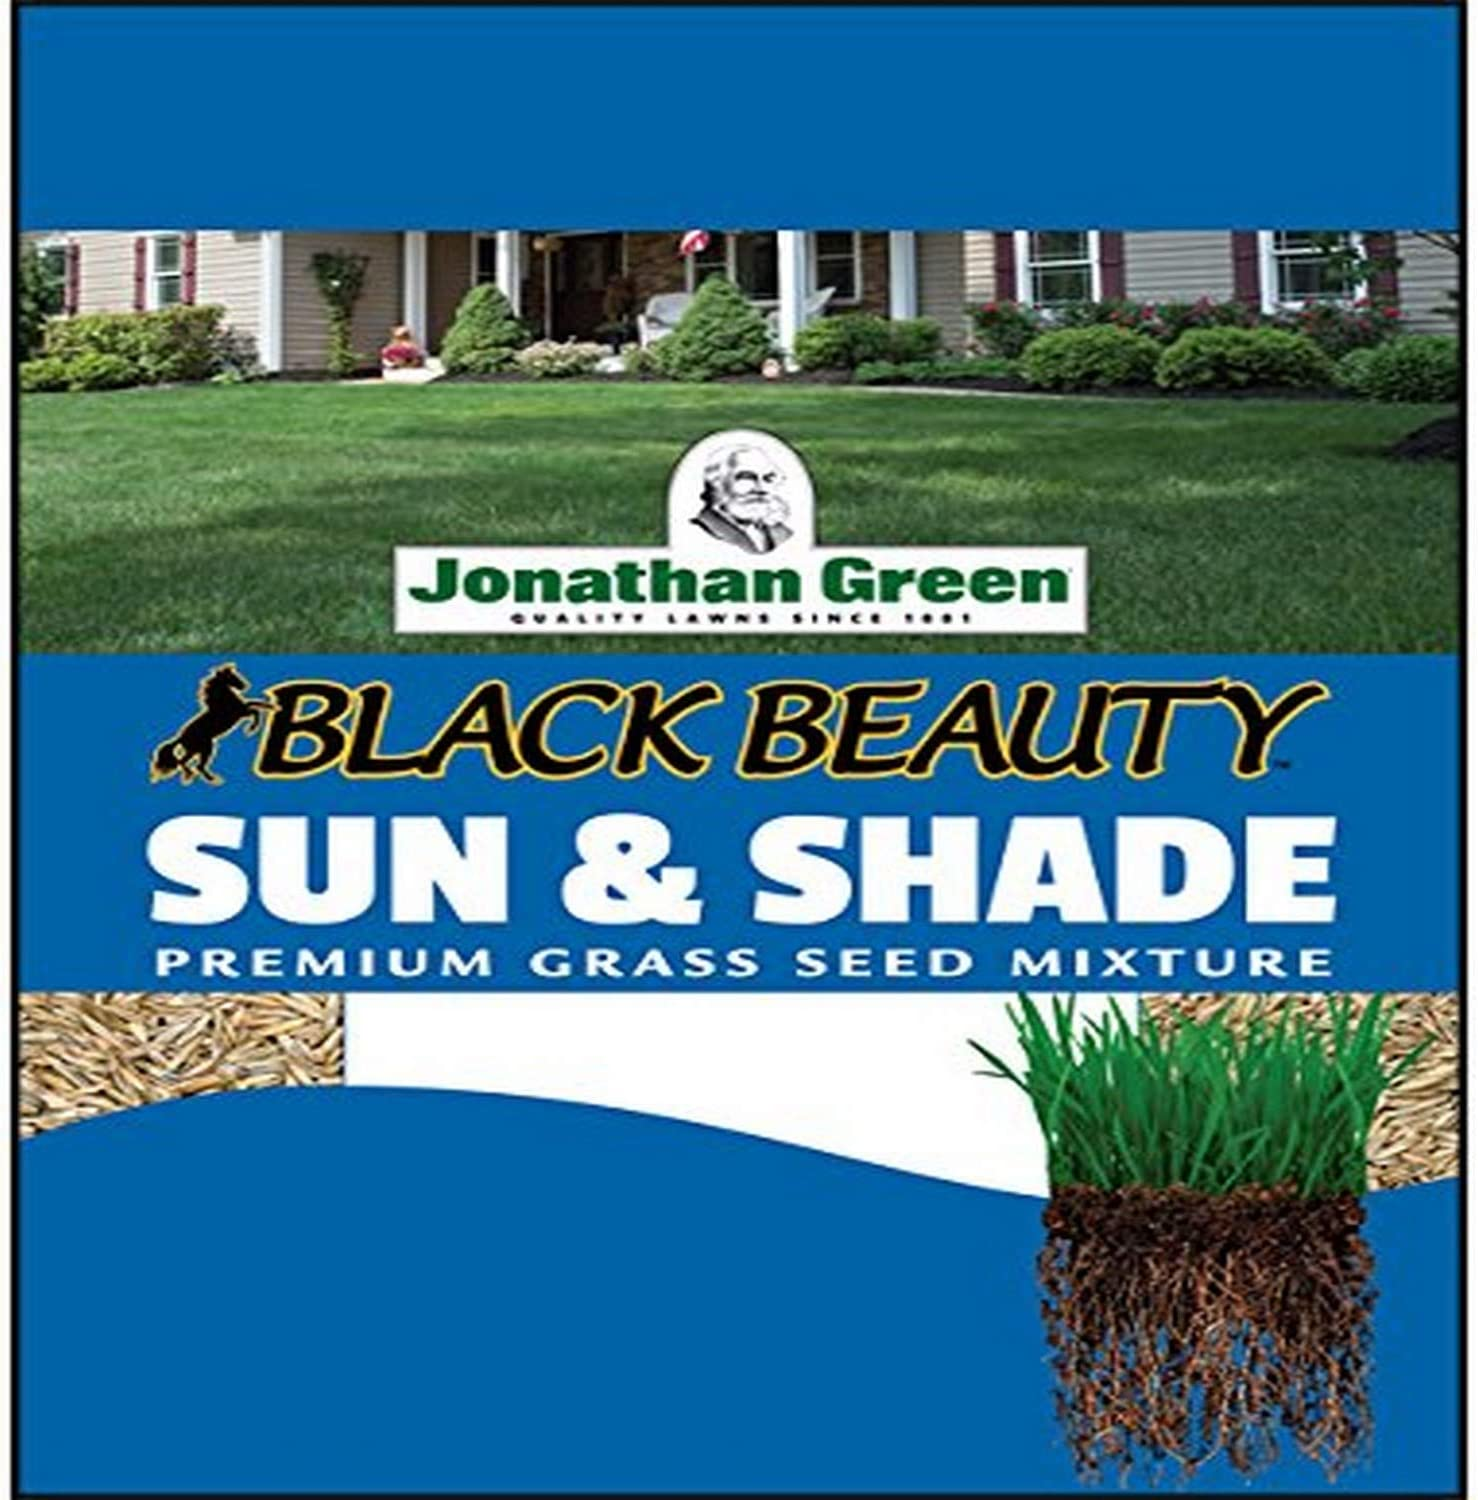 Weekly update Jonathan Green 12002 service Sun and Shade Grass Seed Pounds Mix 3